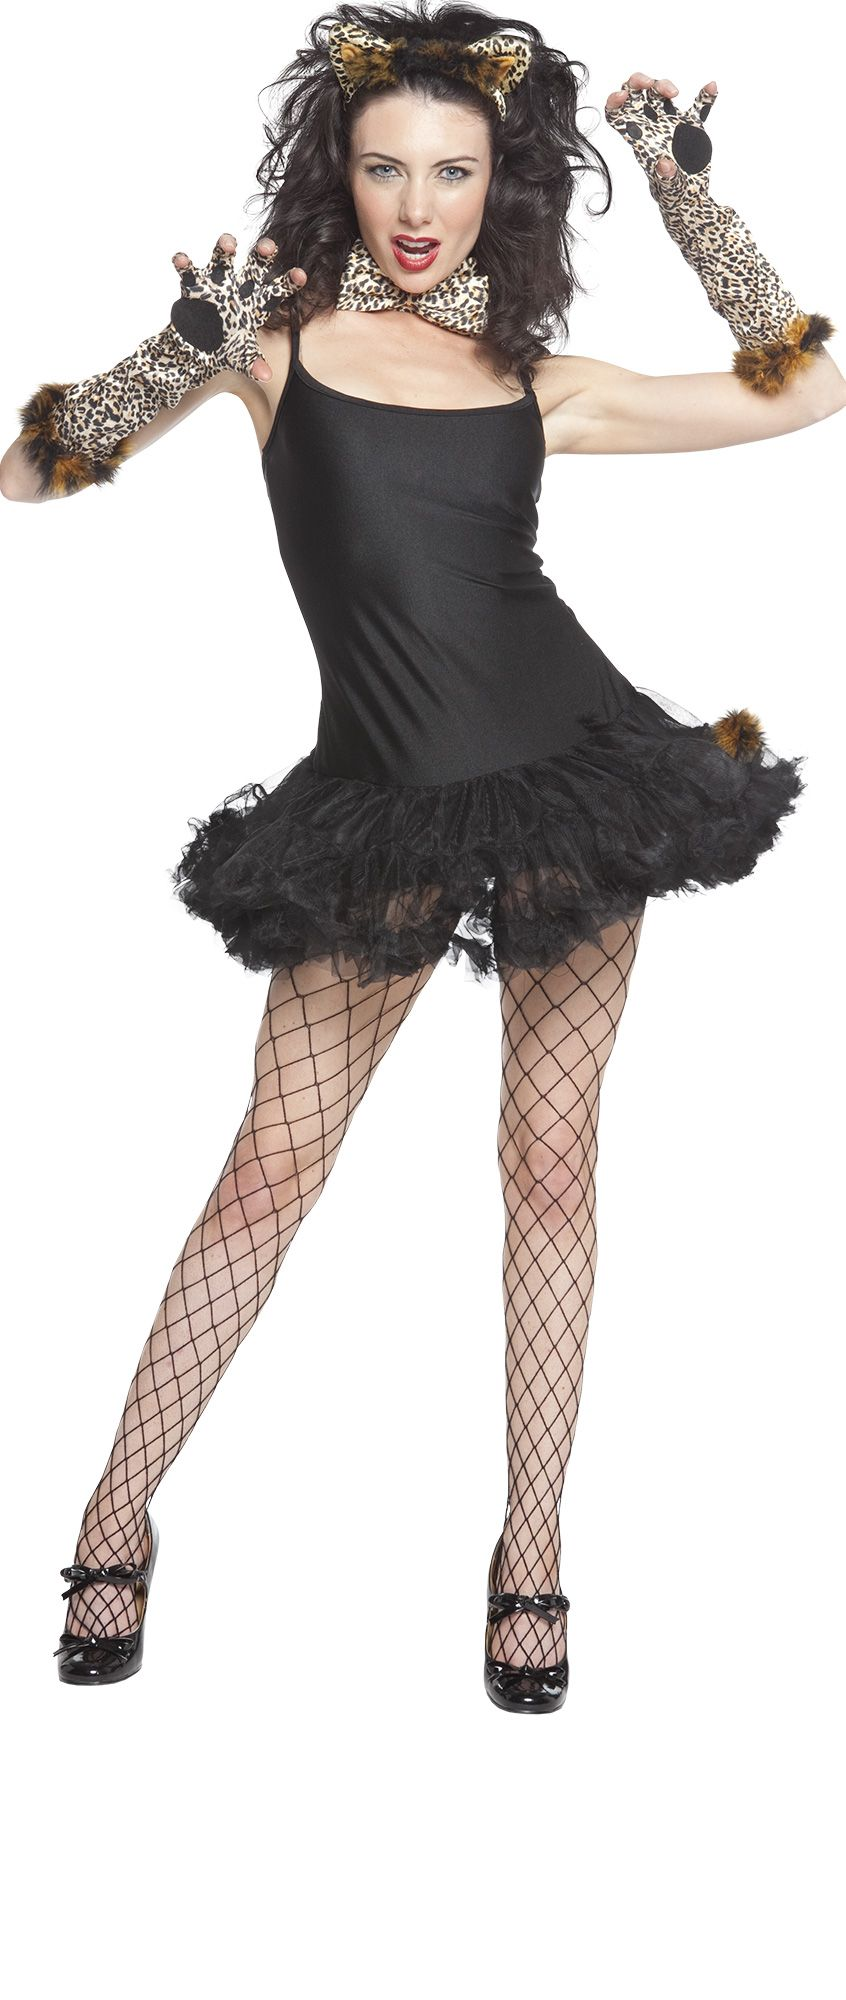 Make Your Costume - Womens Pretty Kitty Costume #1